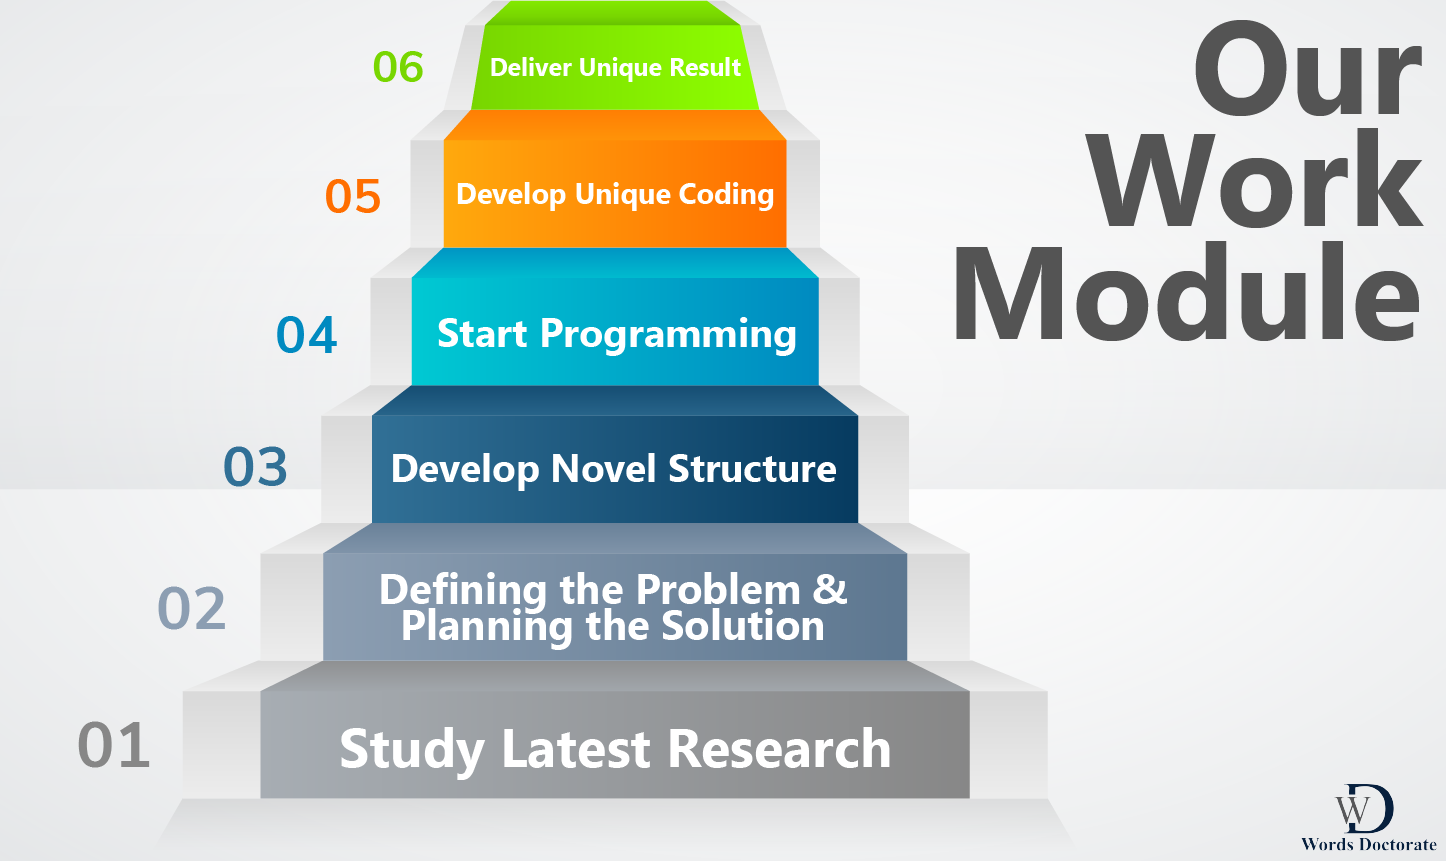 Our work module - Words Doctorate